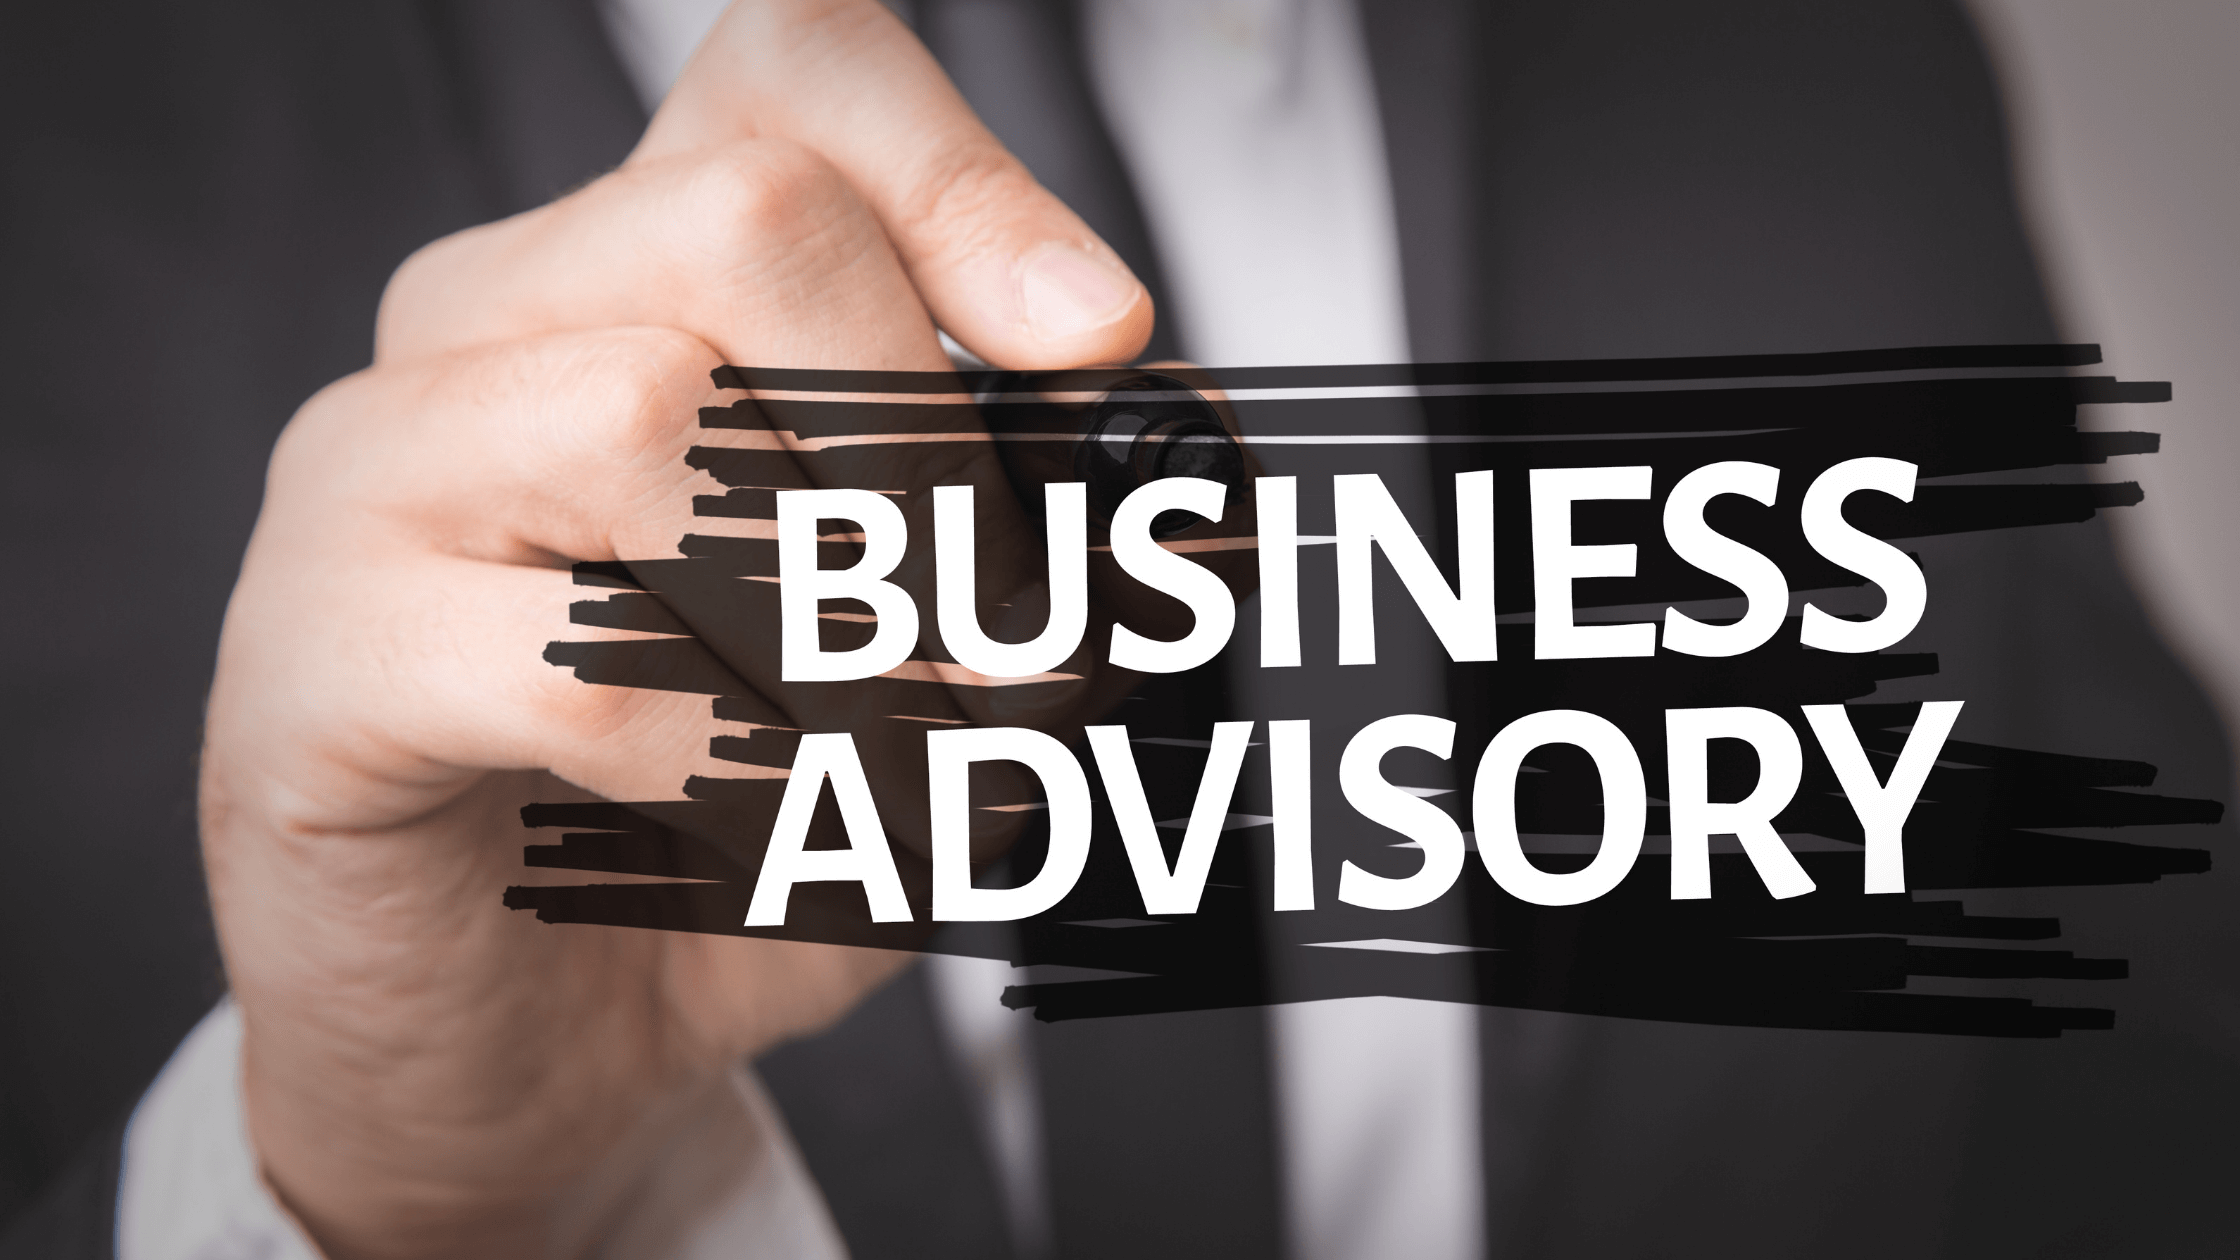 Why should you invest in business advisory services?